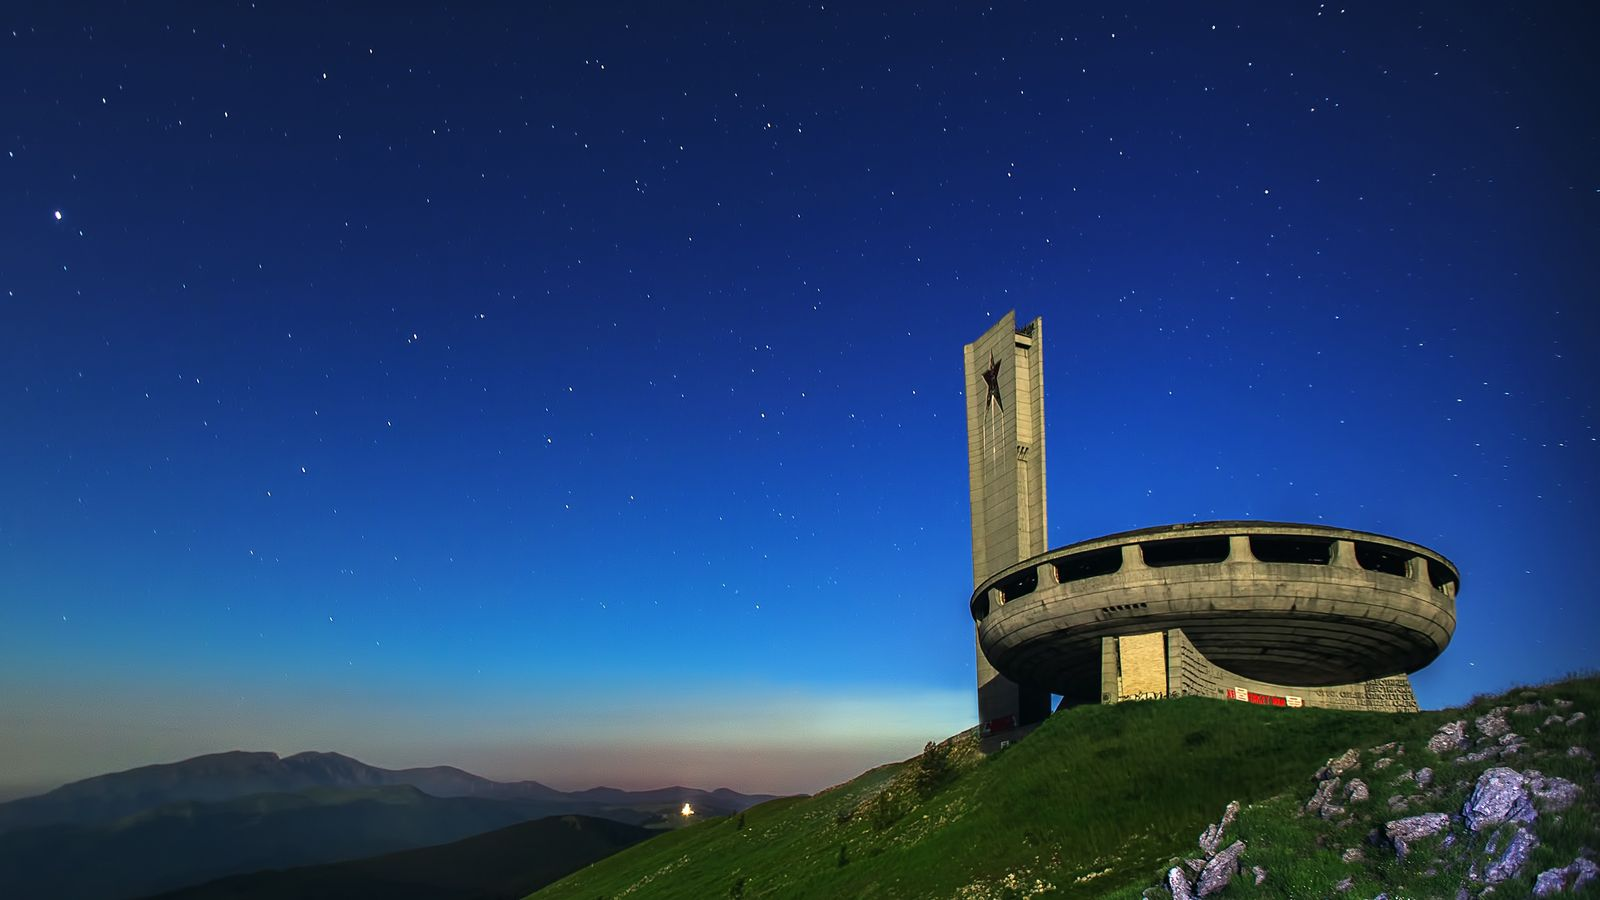 Buzludzha hovers on a historical peak in the Balkan Mountains of Bulgaria.